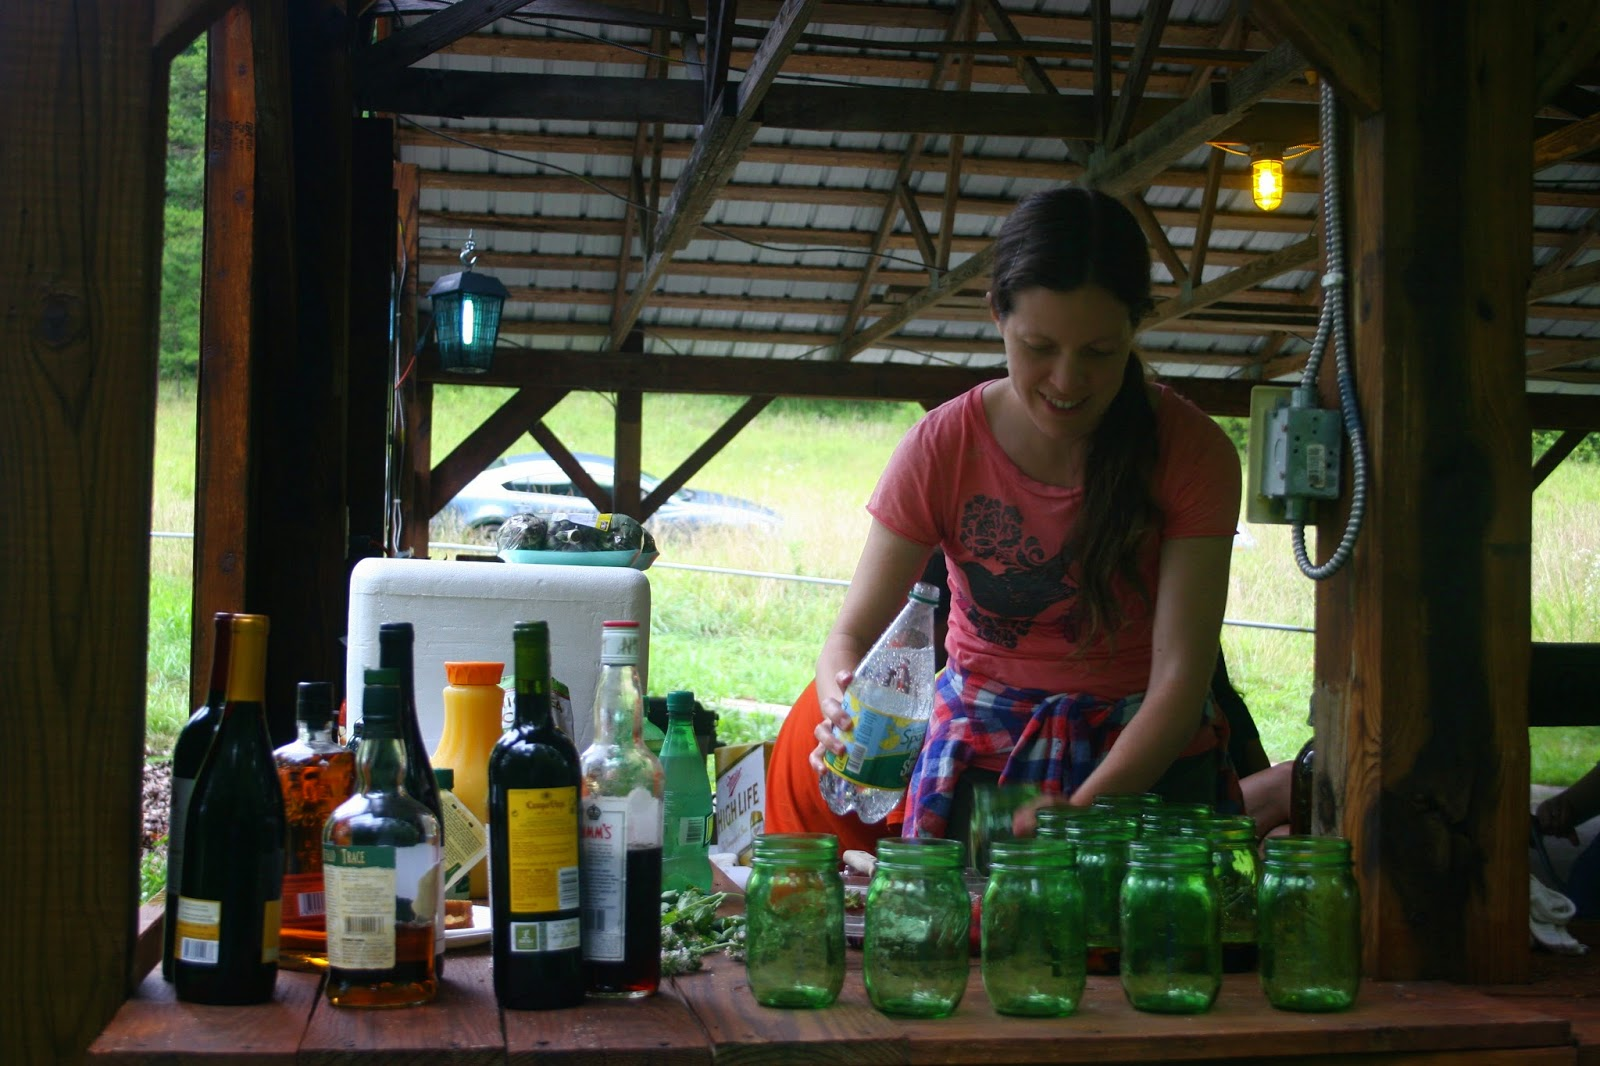 Bradley prepares drinks at Big Switch Farm